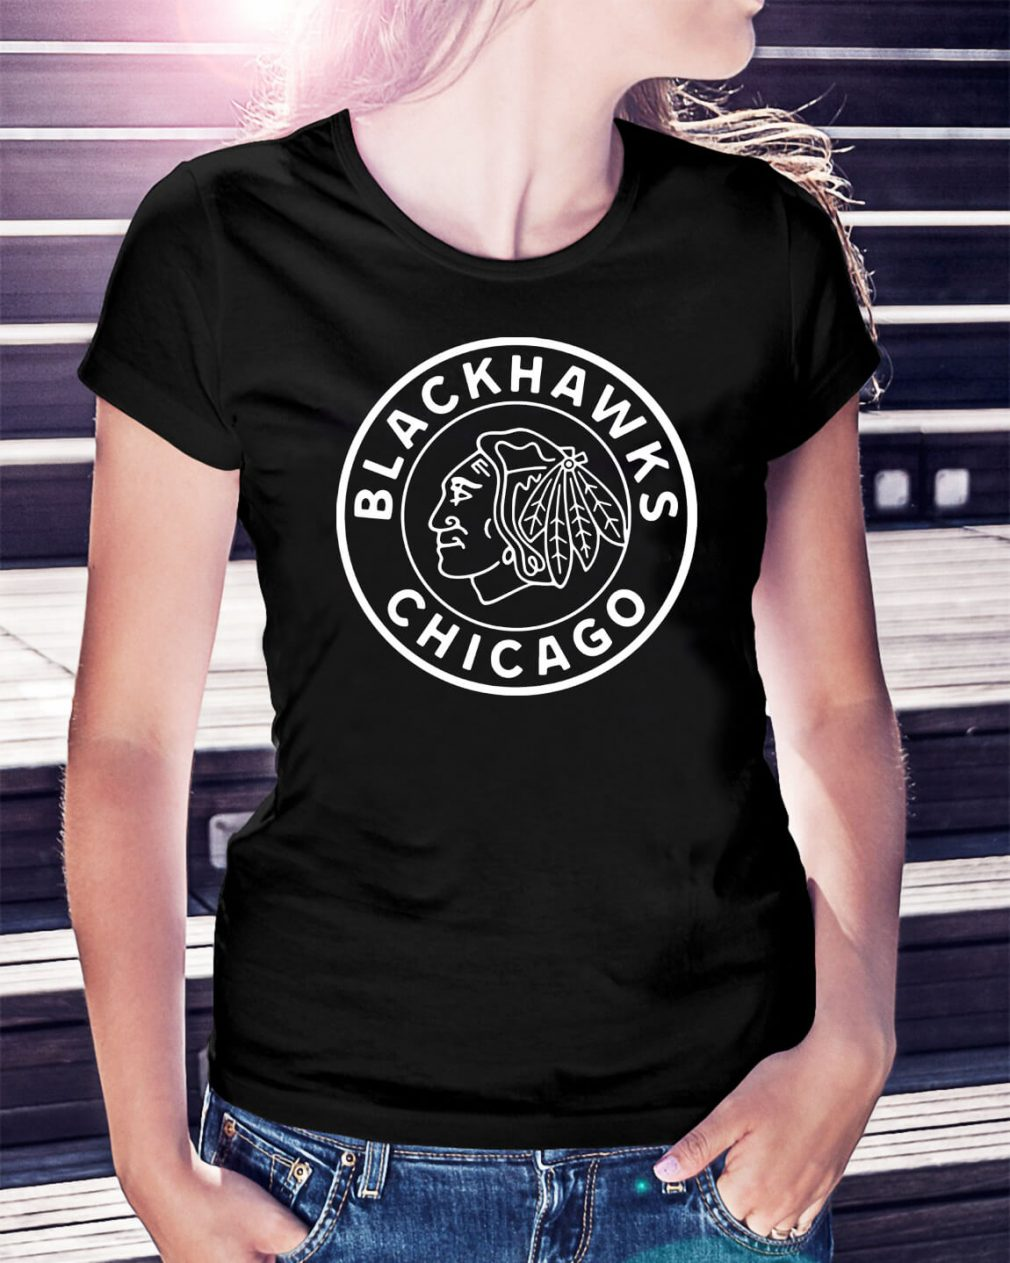 Reebok Blackhawks Chicago Ladies Tee